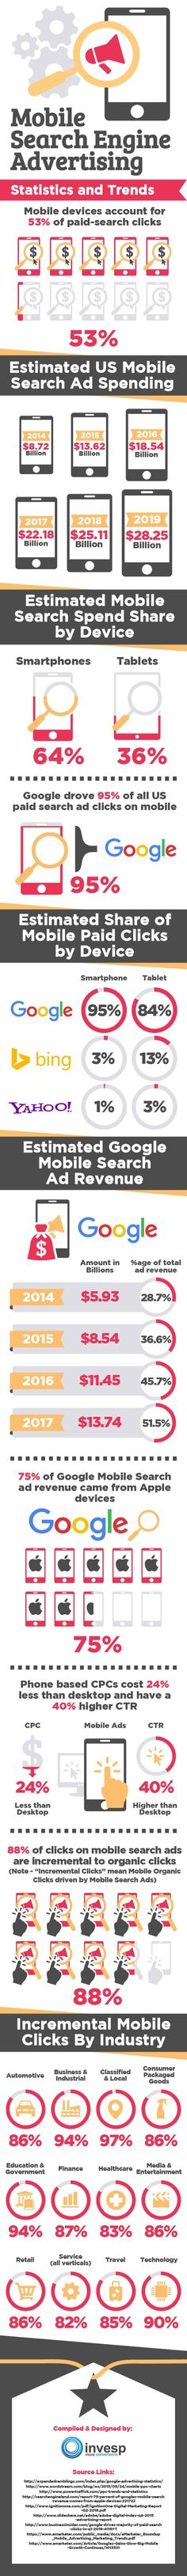 Mobile Search Engine Advertising – Statistics and Trends - #Infographic